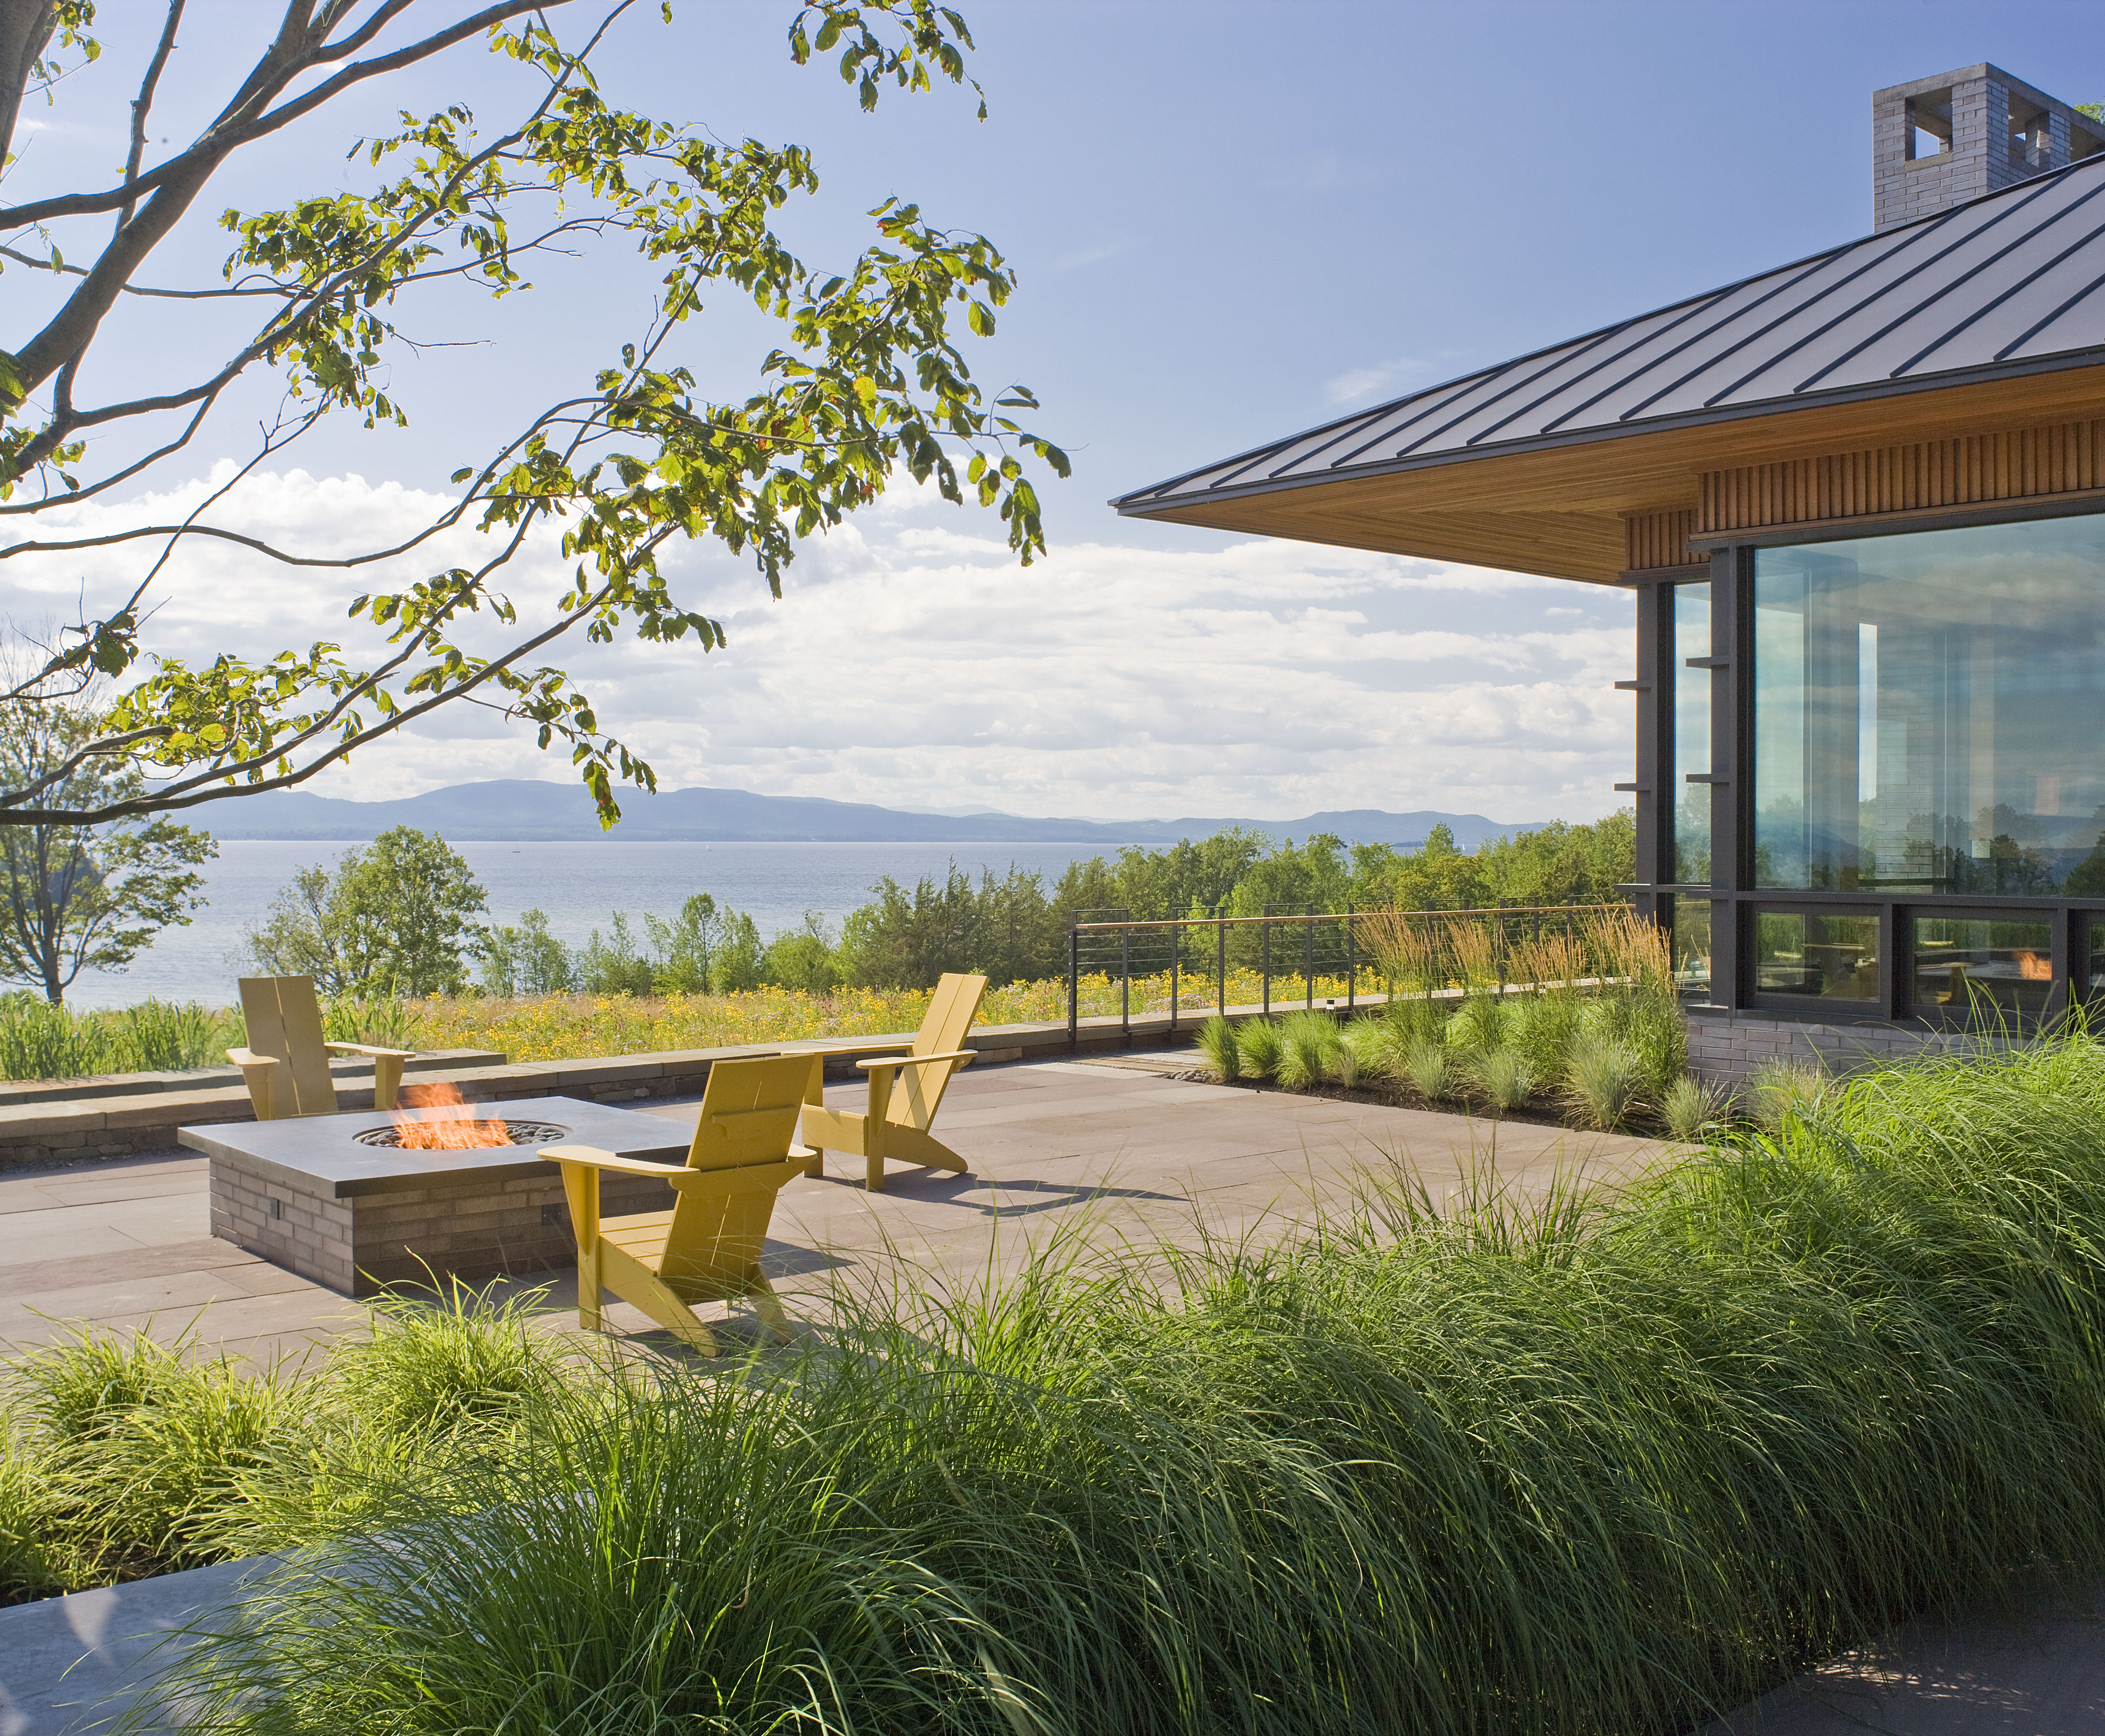 Asla 2012 professional awards quaker smith point residence for Best modern residential architects